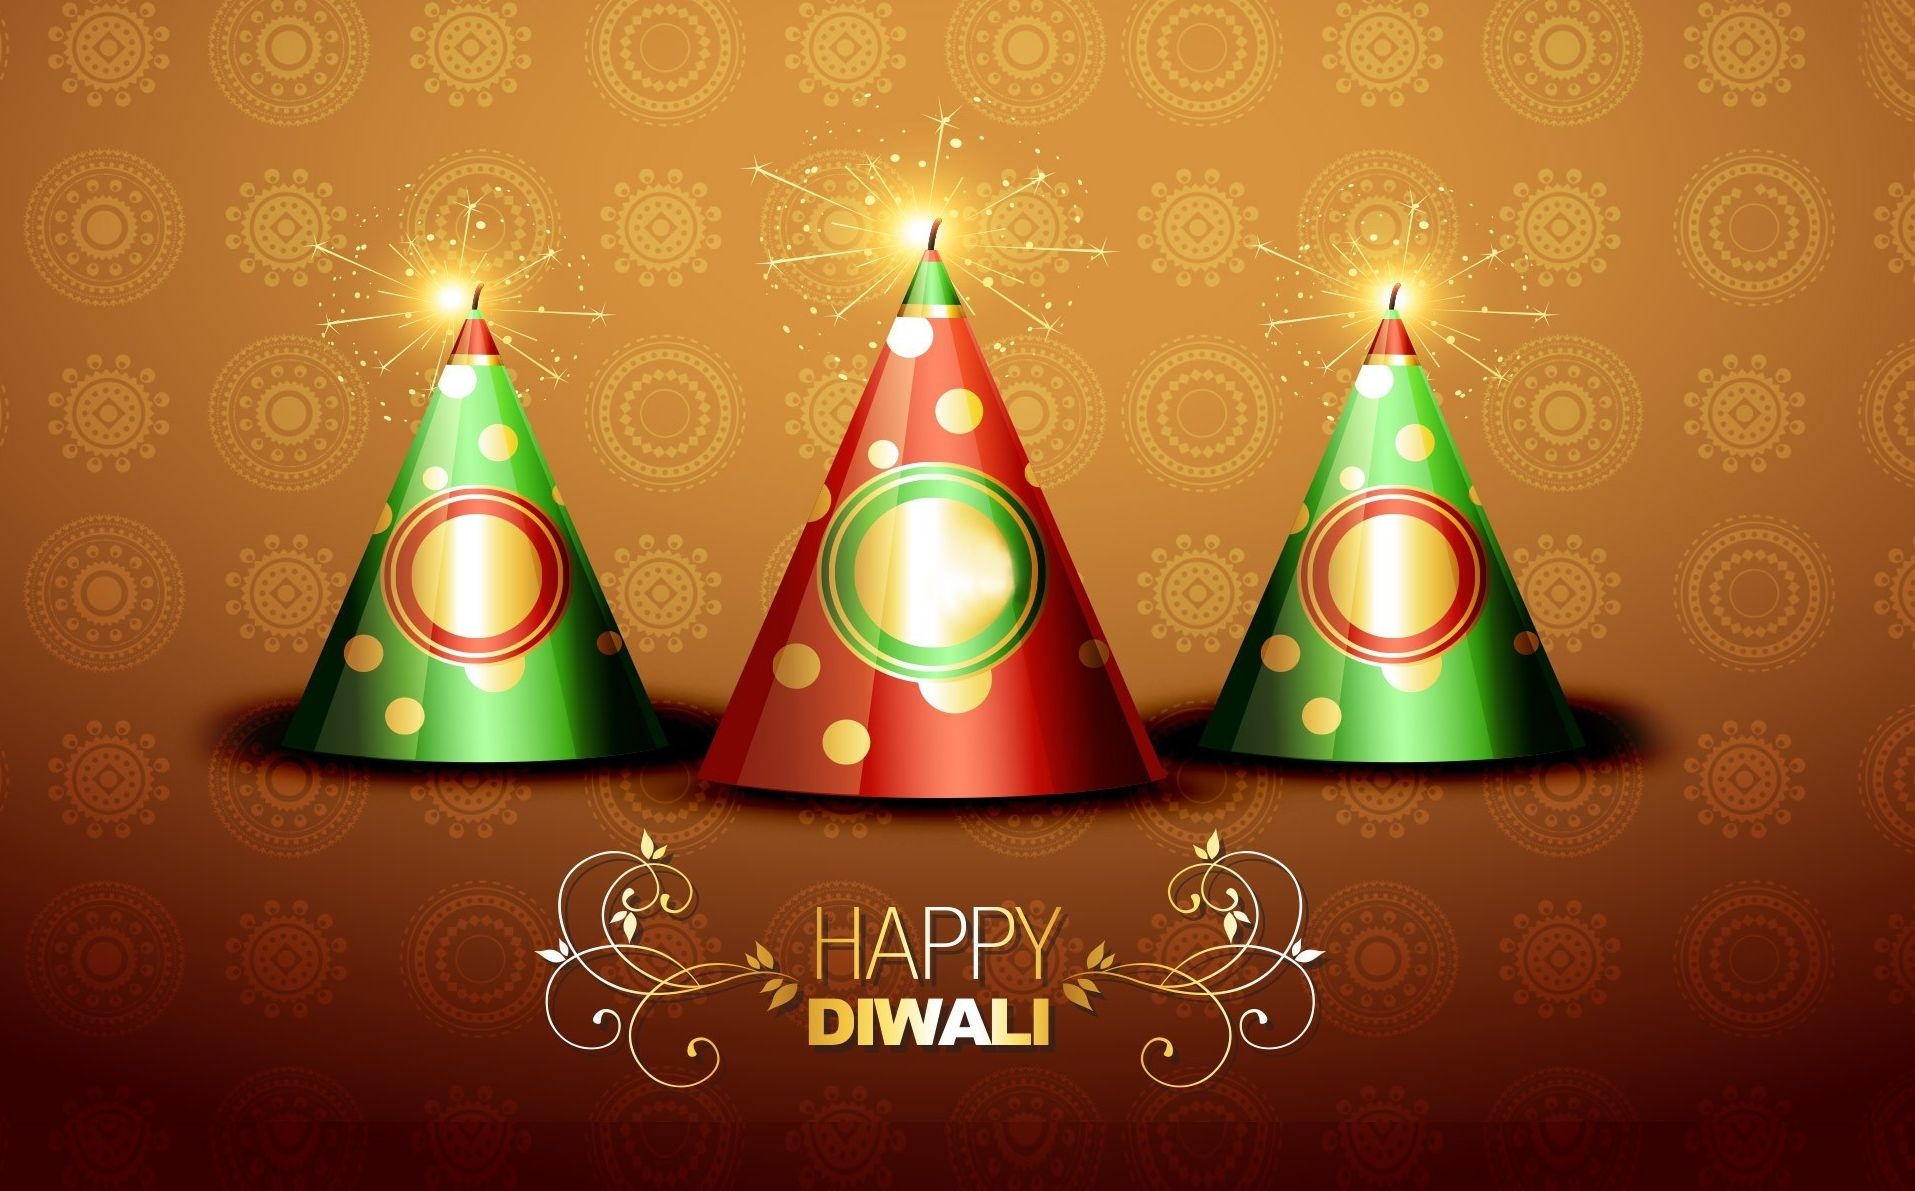 HD Crackers and Diwali Pictures